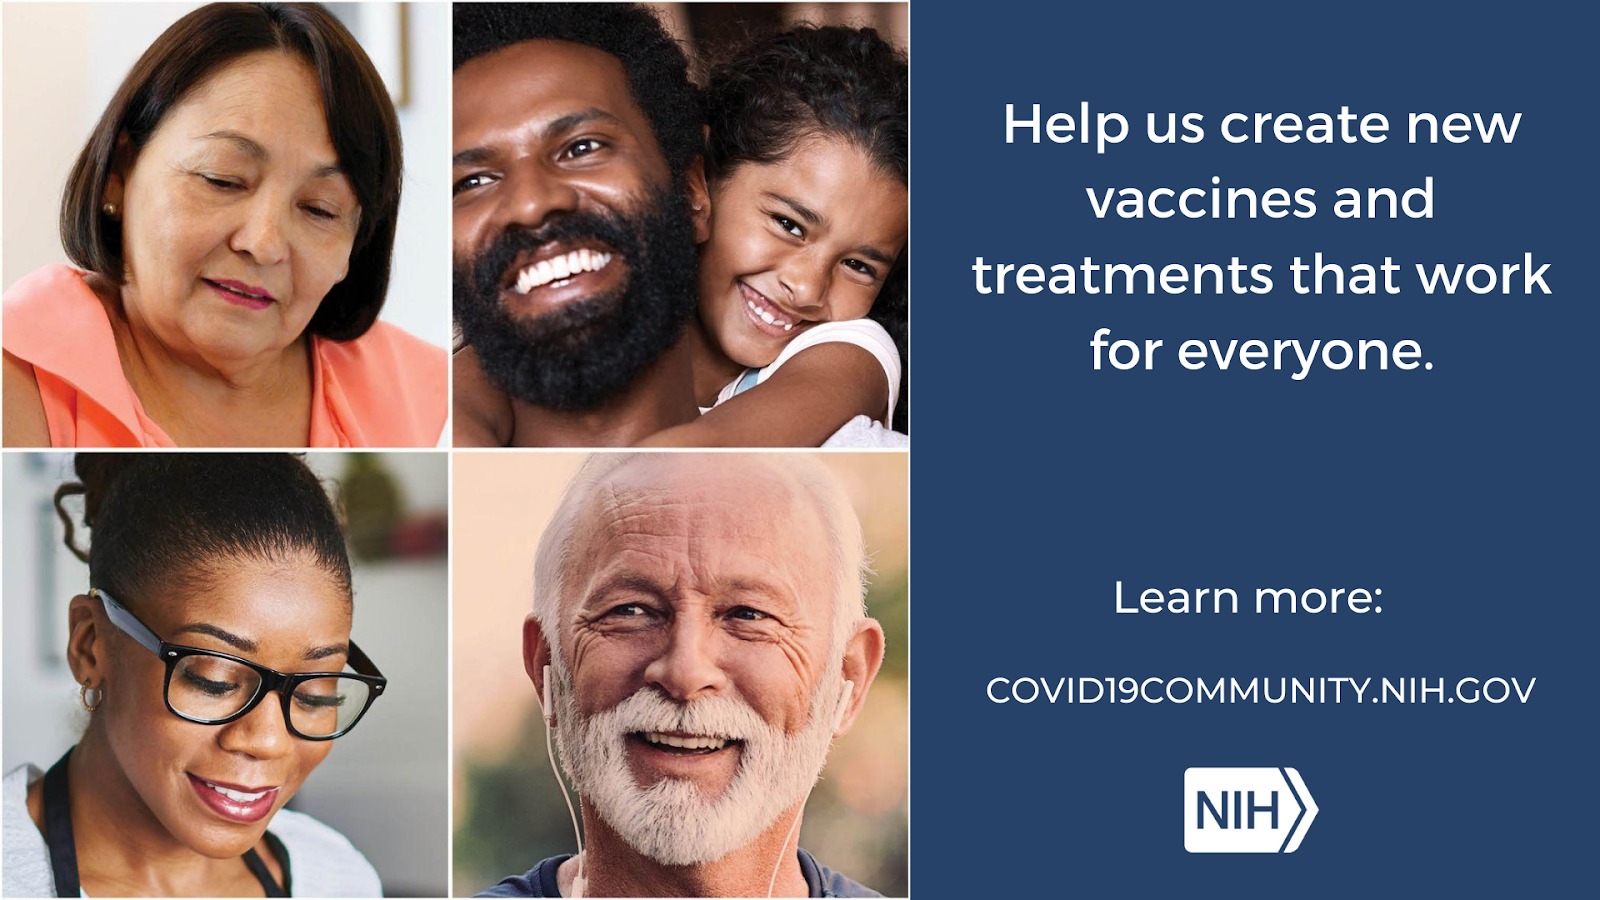 """Collage of individual headshots that reads: """"Help us create new vaccines and treatments that work for everyone. Learn more: covid19community.nih.gov"""""""